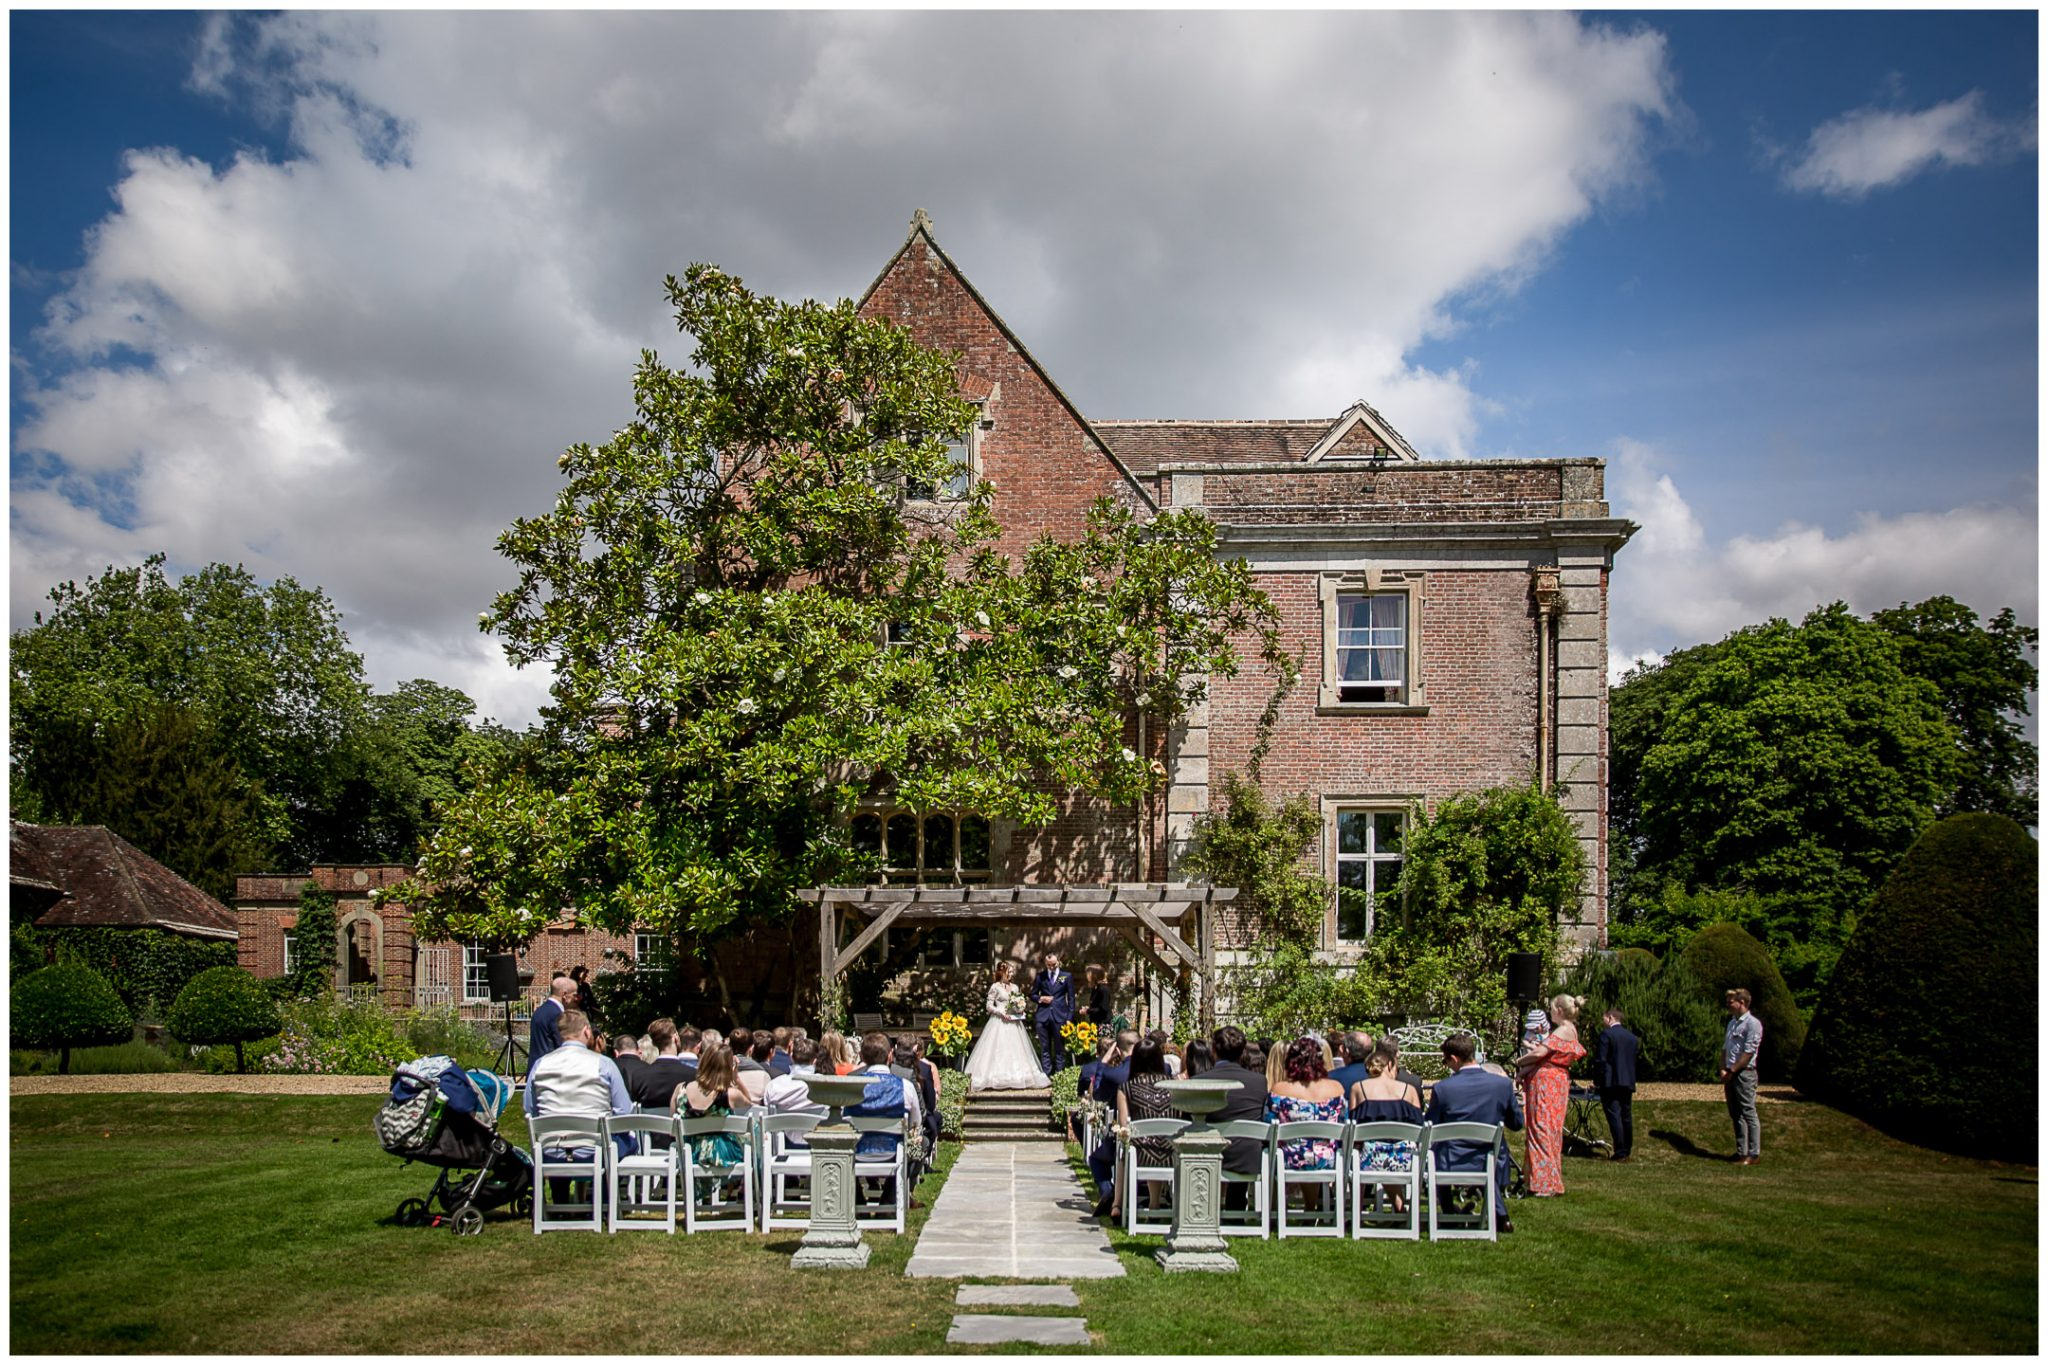 View of the rear of the house during the marriage service